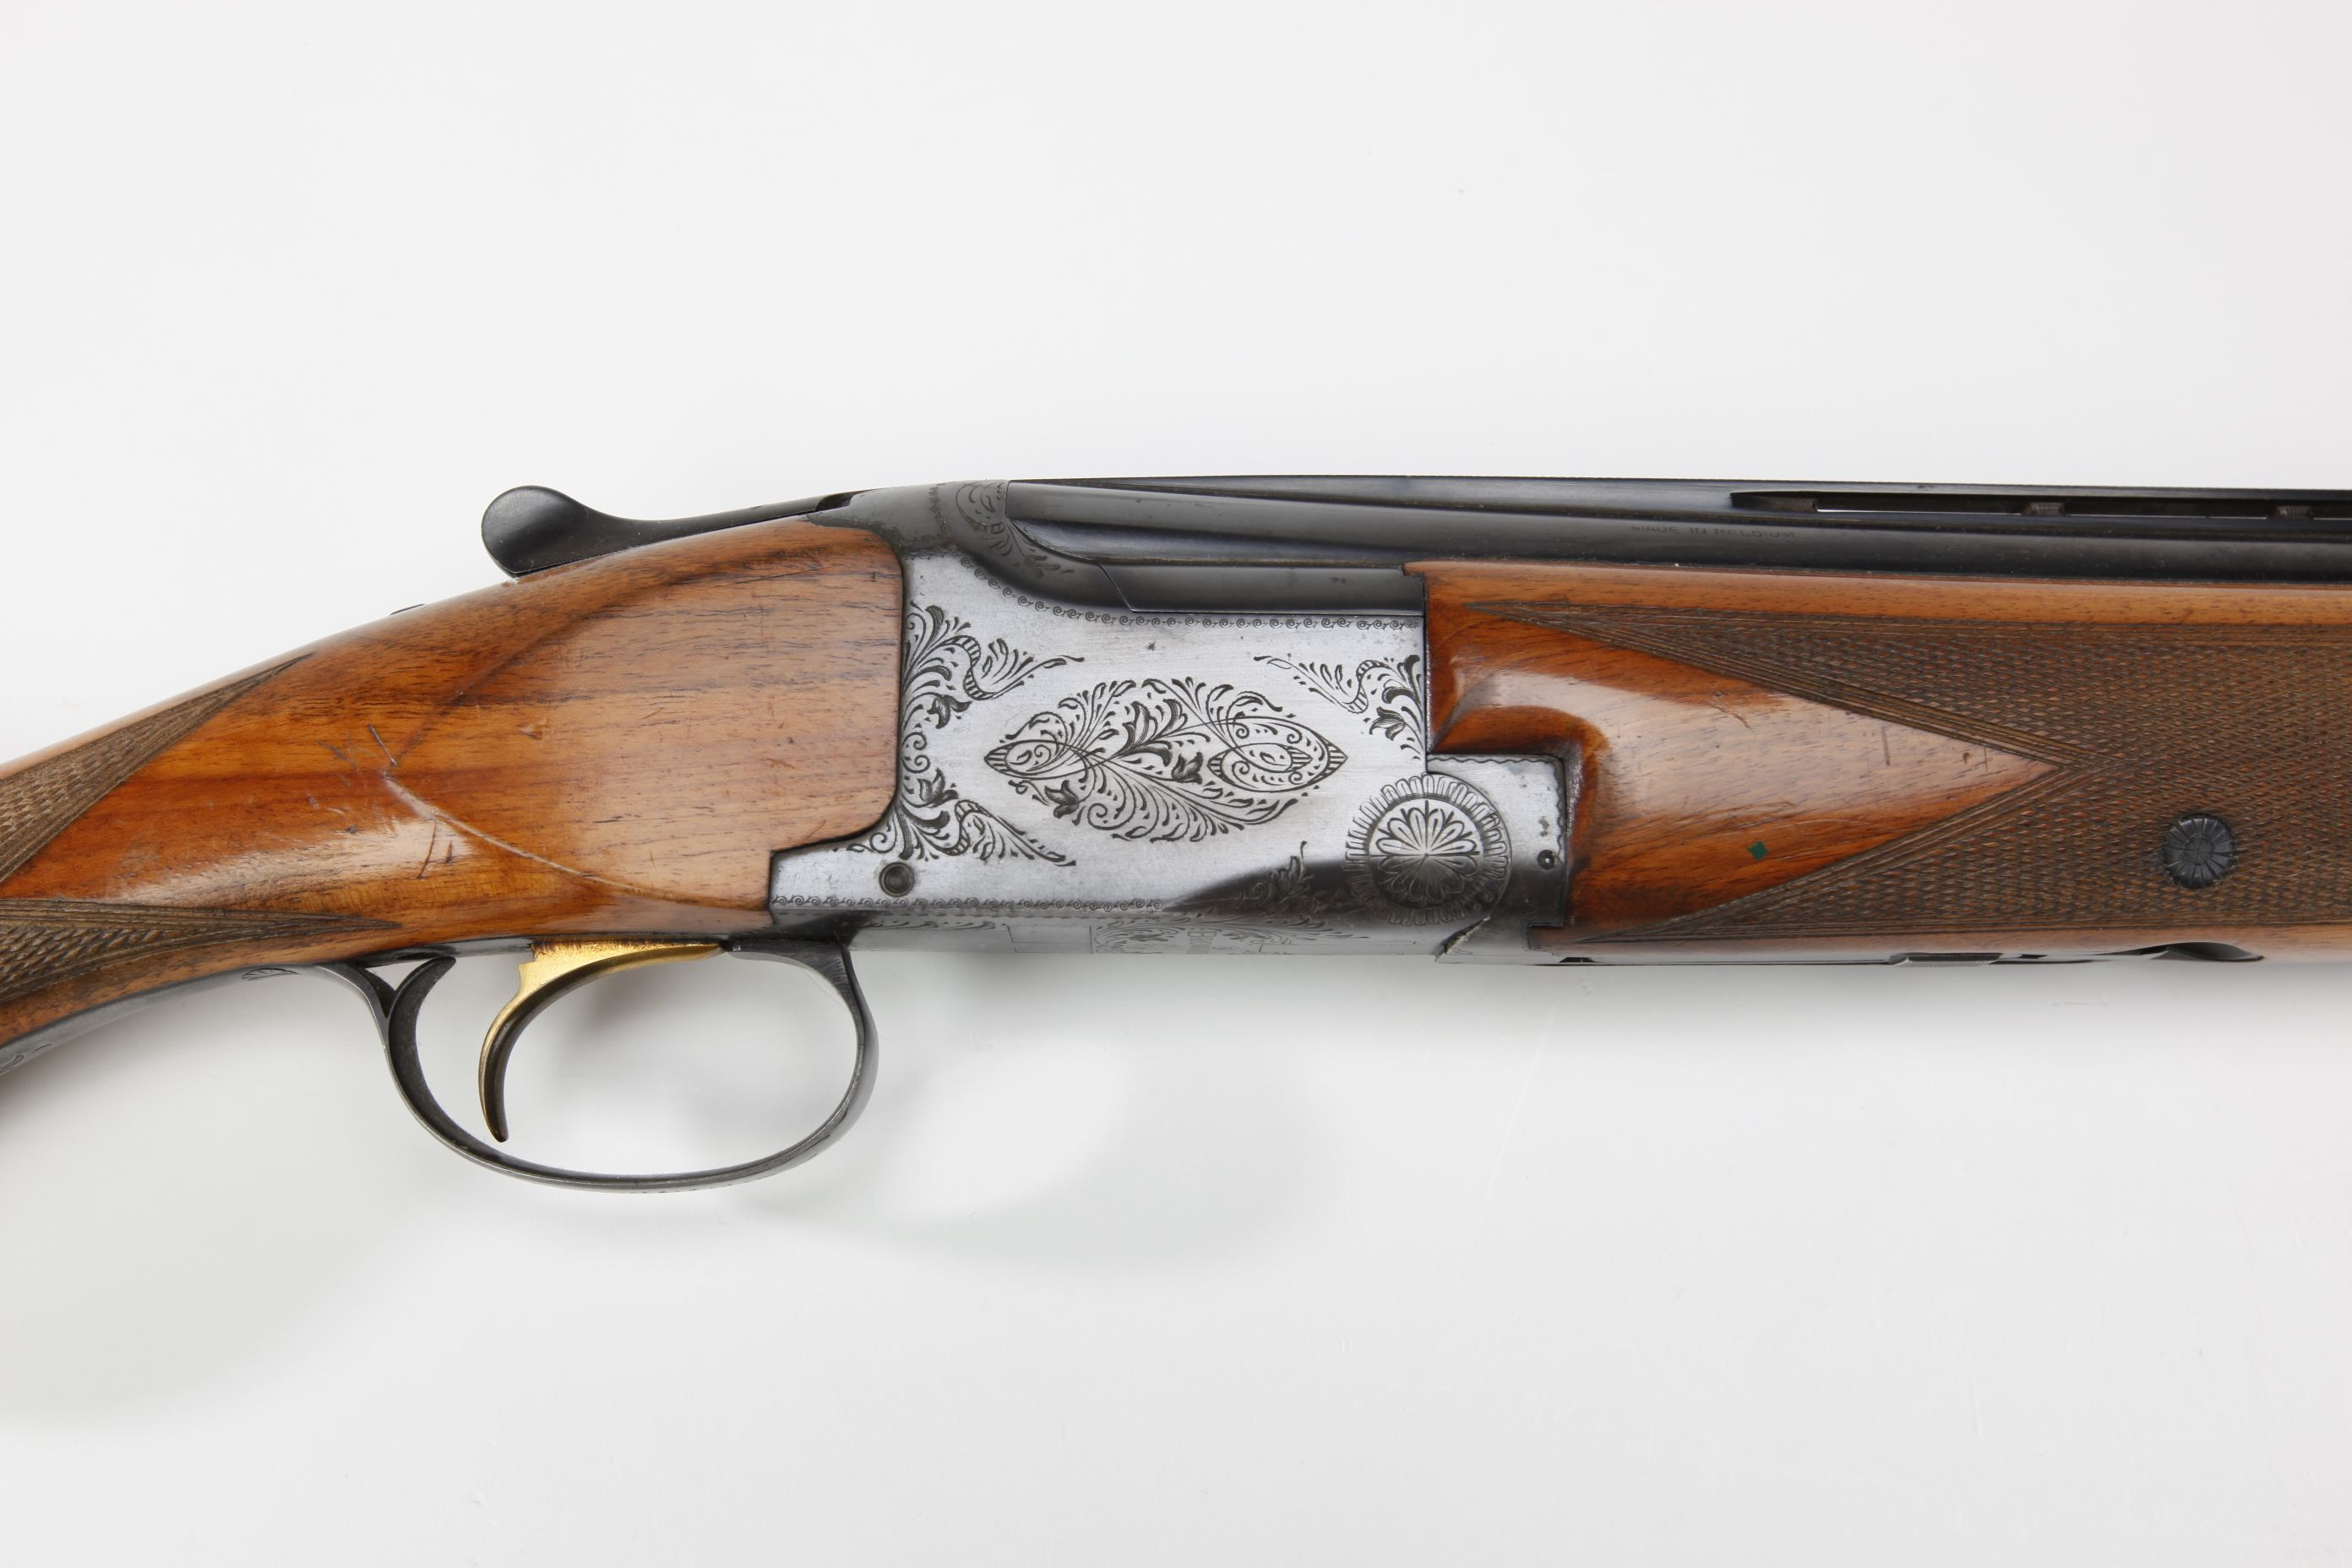 Tennessee Ernie Ford's Browning Shotgun